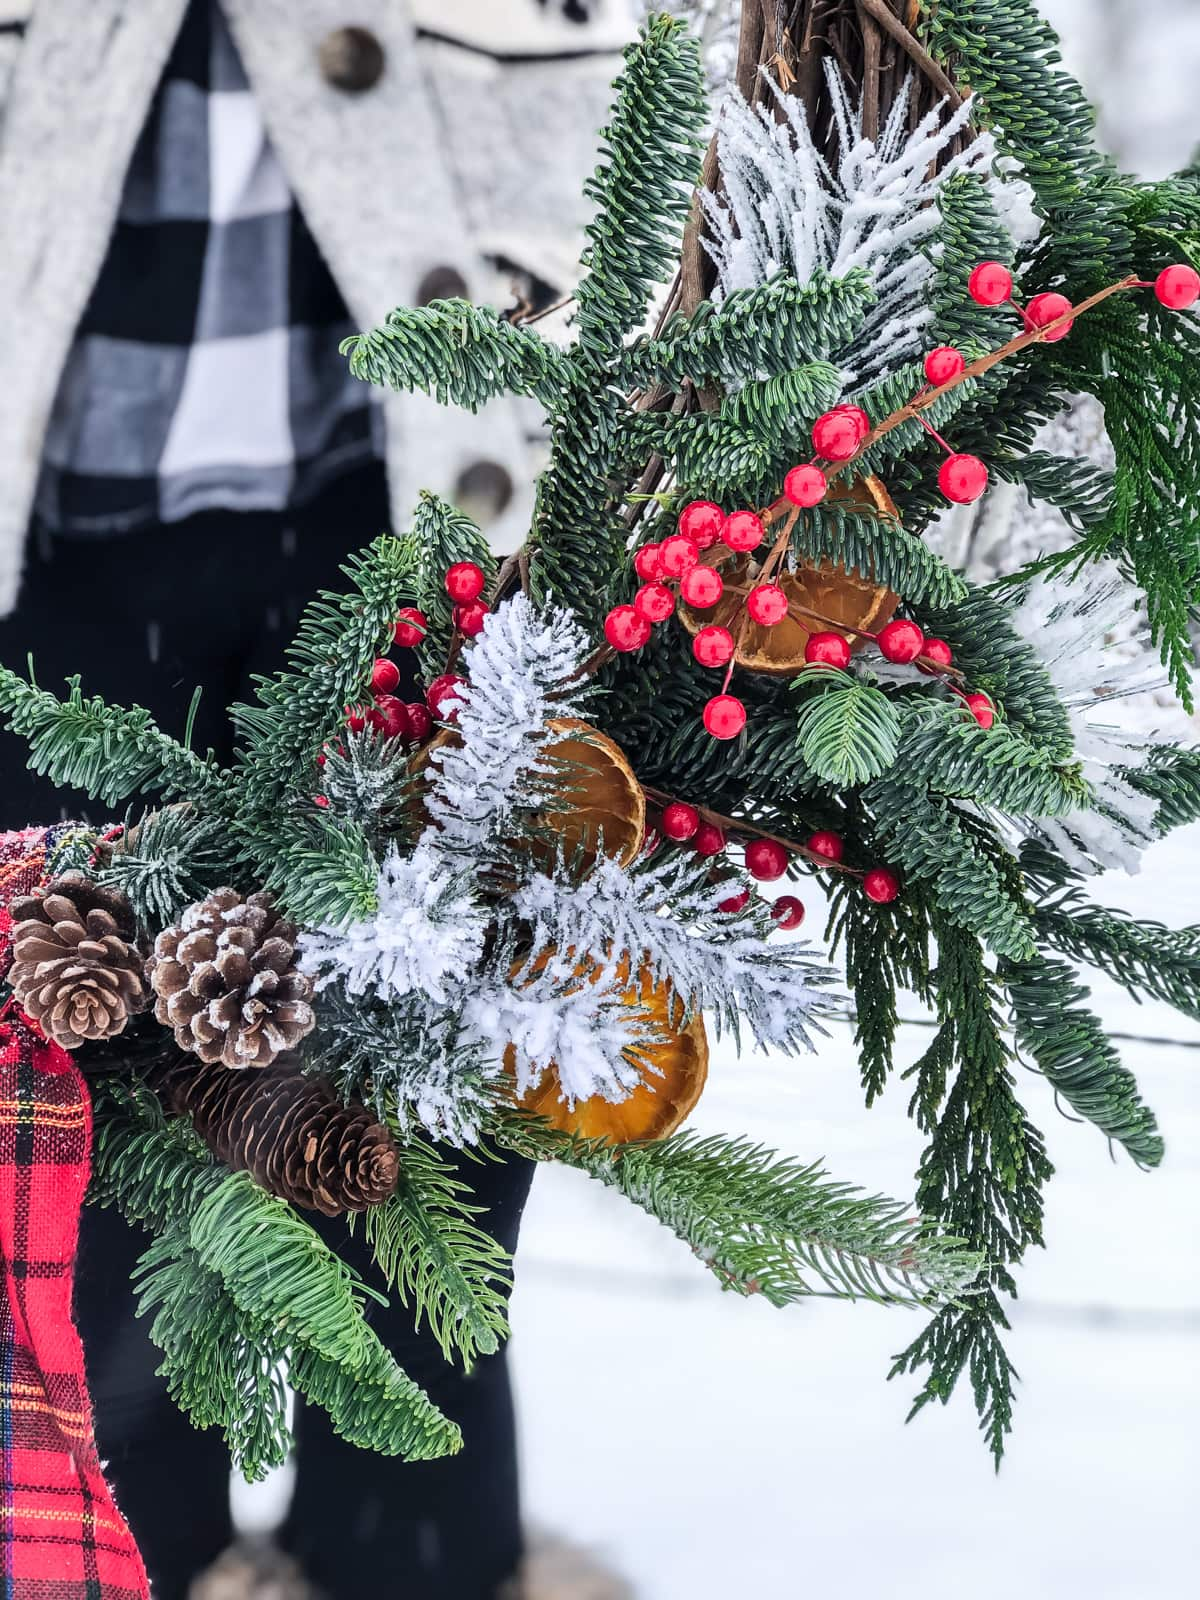 A close up of a fresh evergreen Christmas wreath with pine cones, red berries and dried oranges